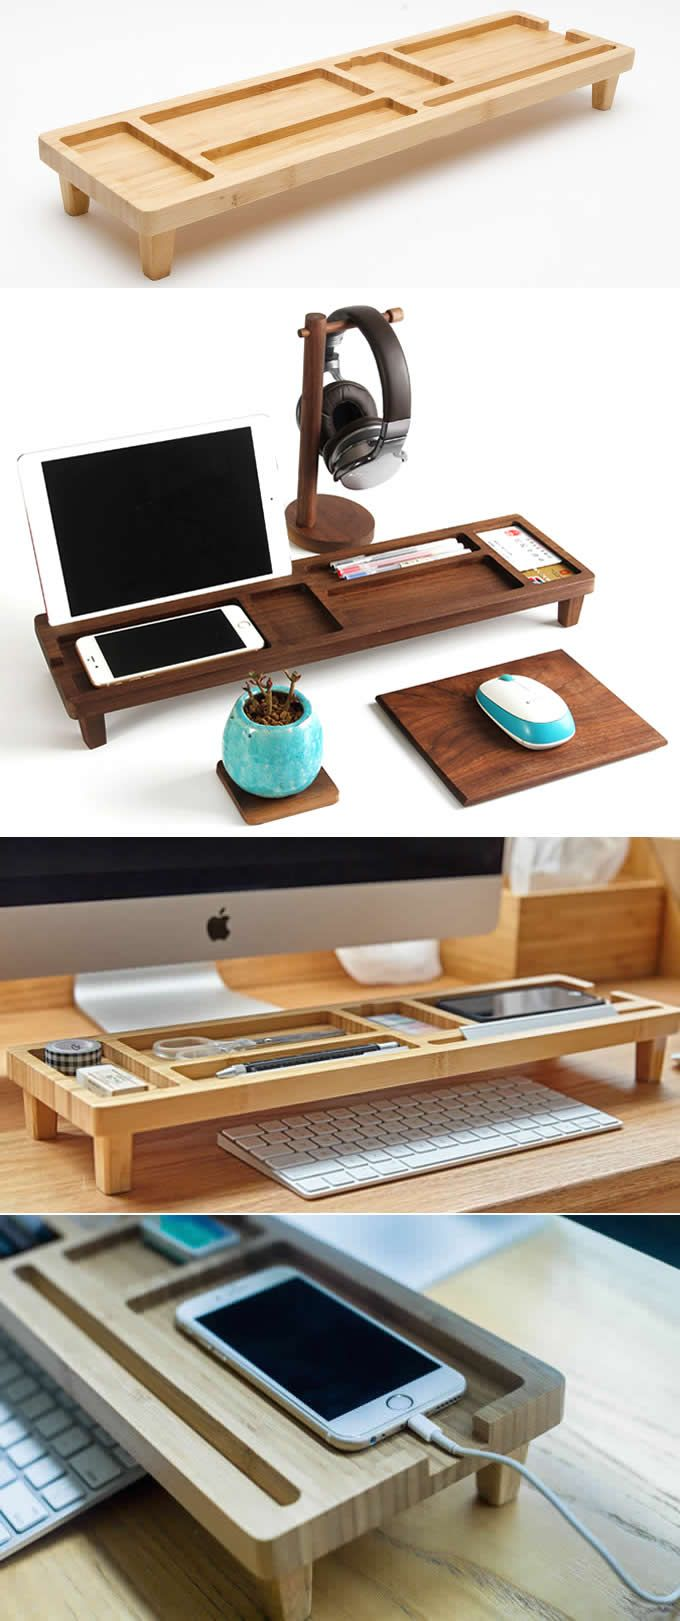 Wooden Stationery Desk Organizer Phone iPad Stand Holder Pen Holder  Over the Keyboard